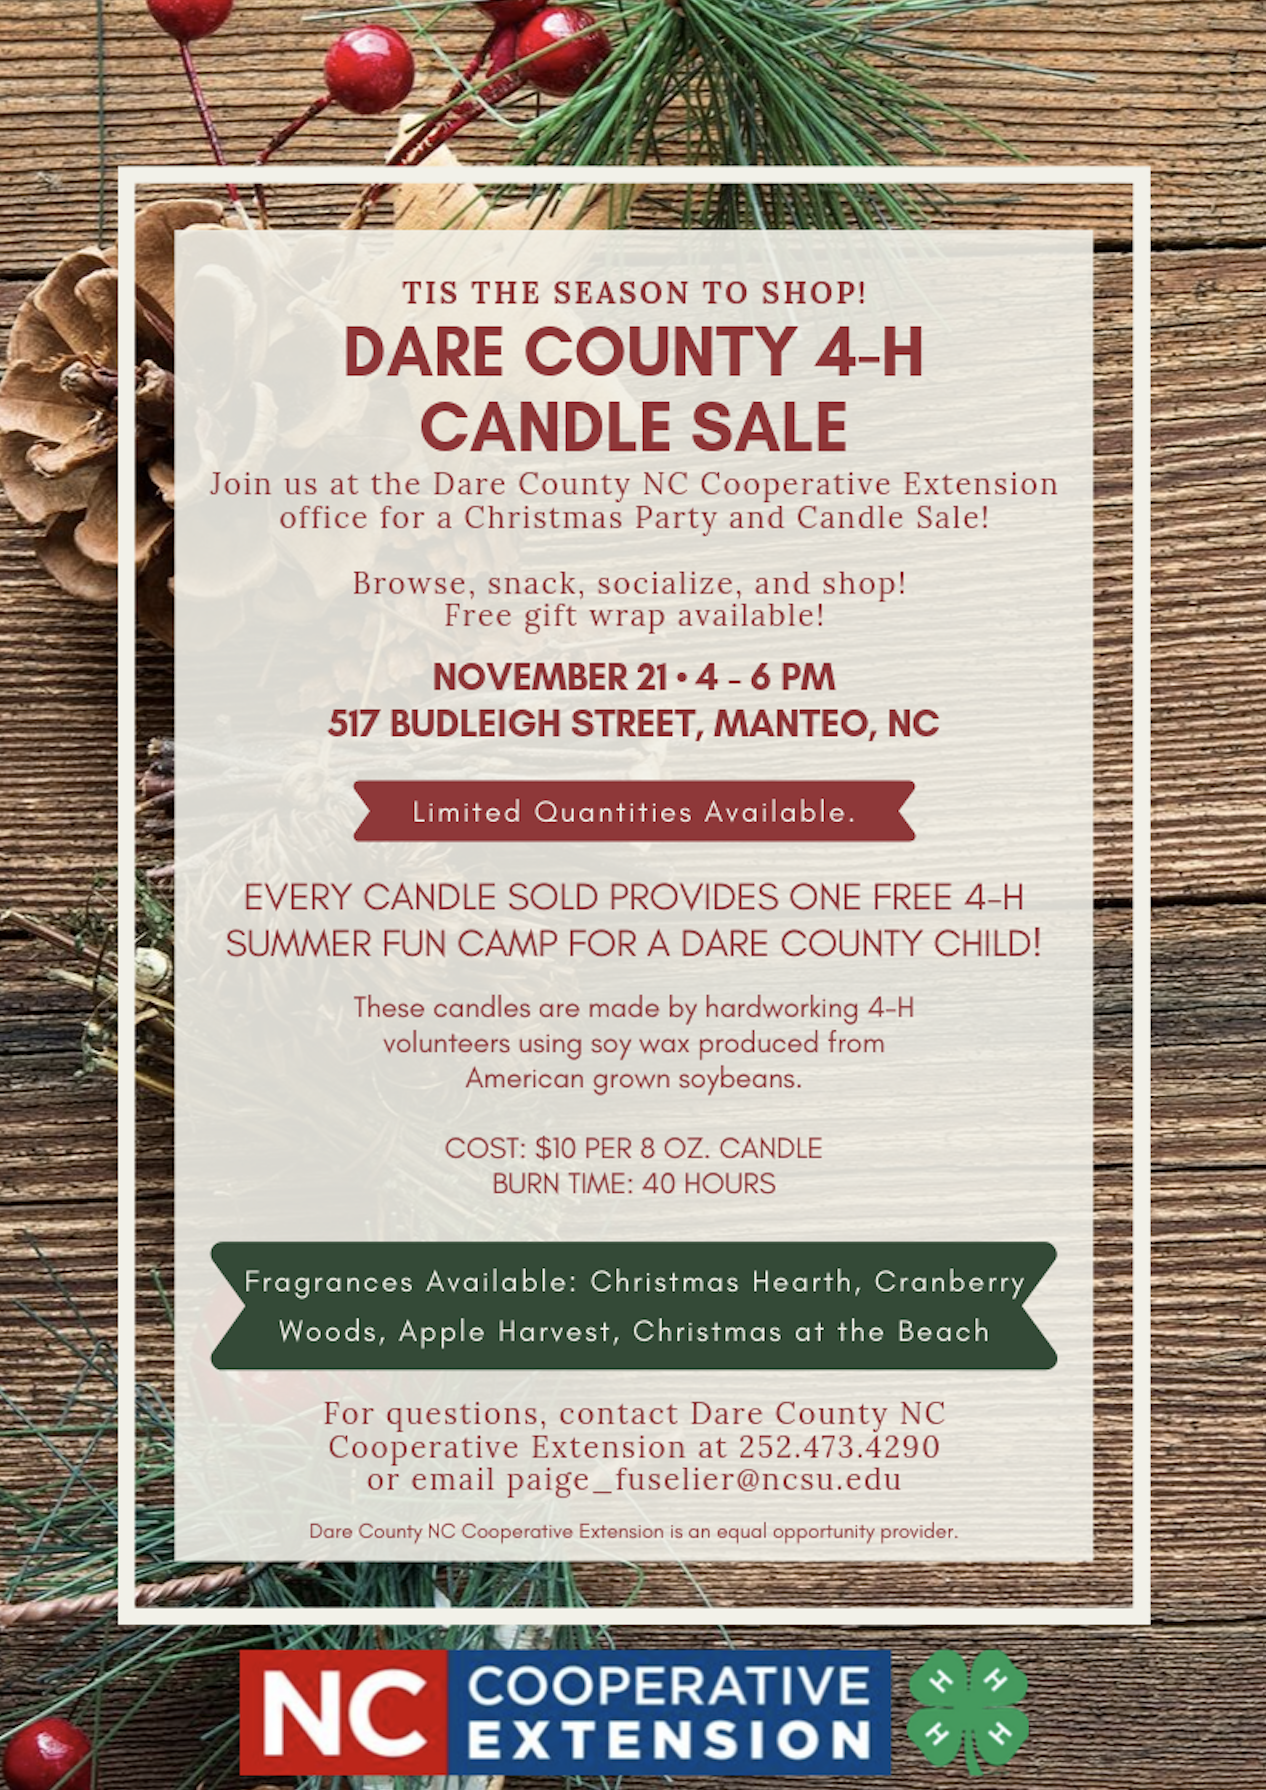 Join us at the Dare County N.C. Cooperative Extension office for a Christmas Party and Candle Sale! Browse, snack, socialize, and shop! Free gift wrap available!